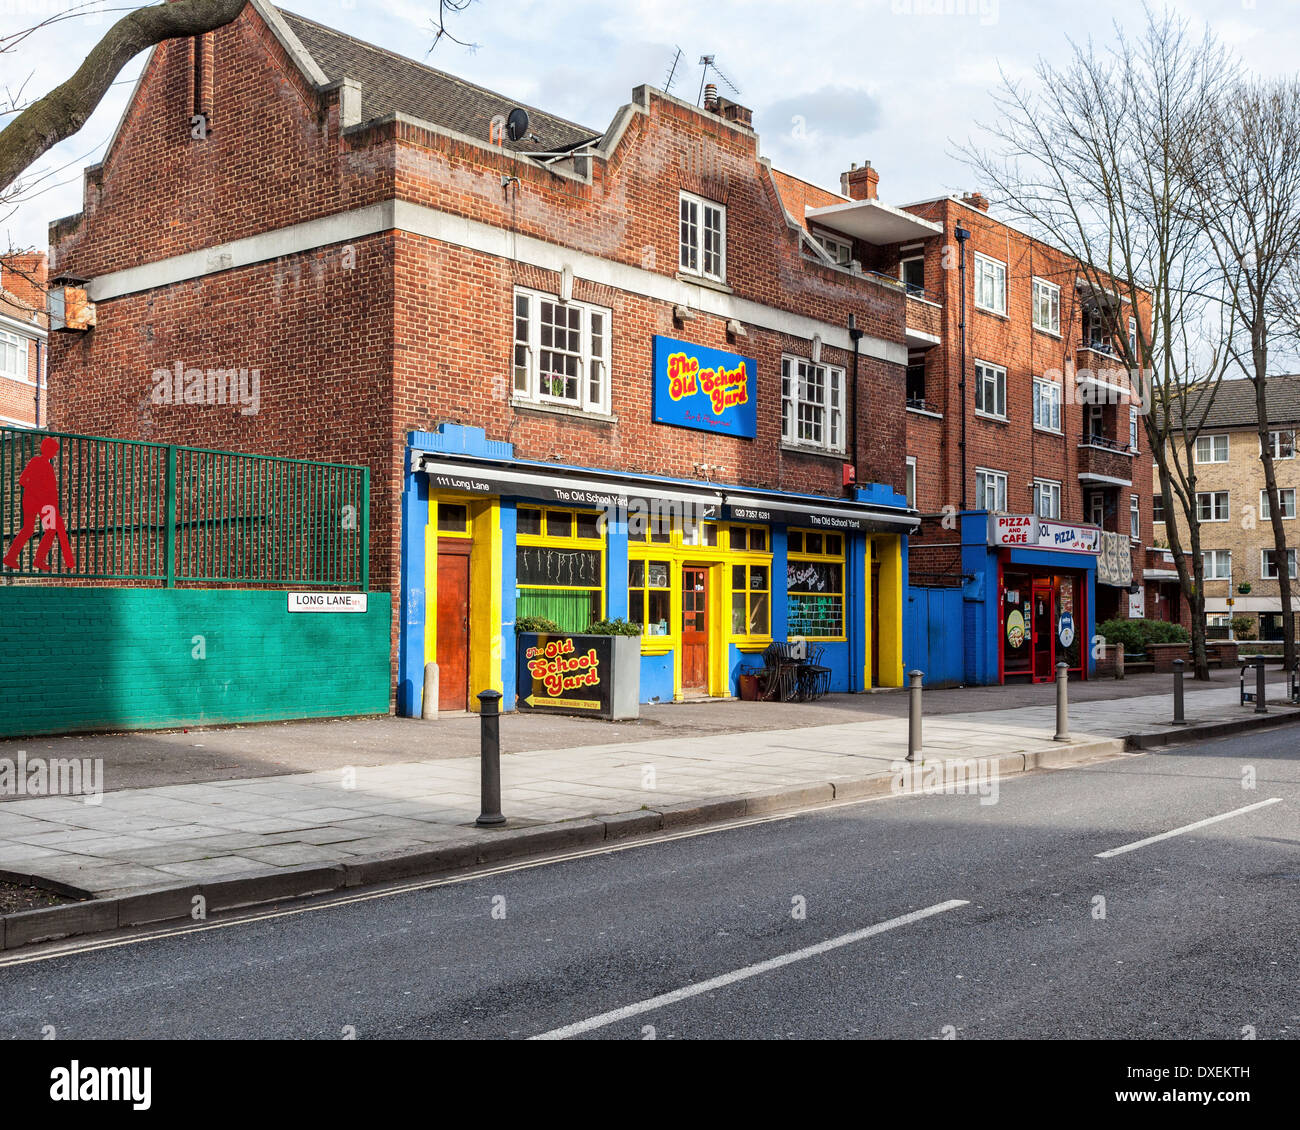 The Old School Yard pub and venue in Long Lane, London, SE1 - Stock Image